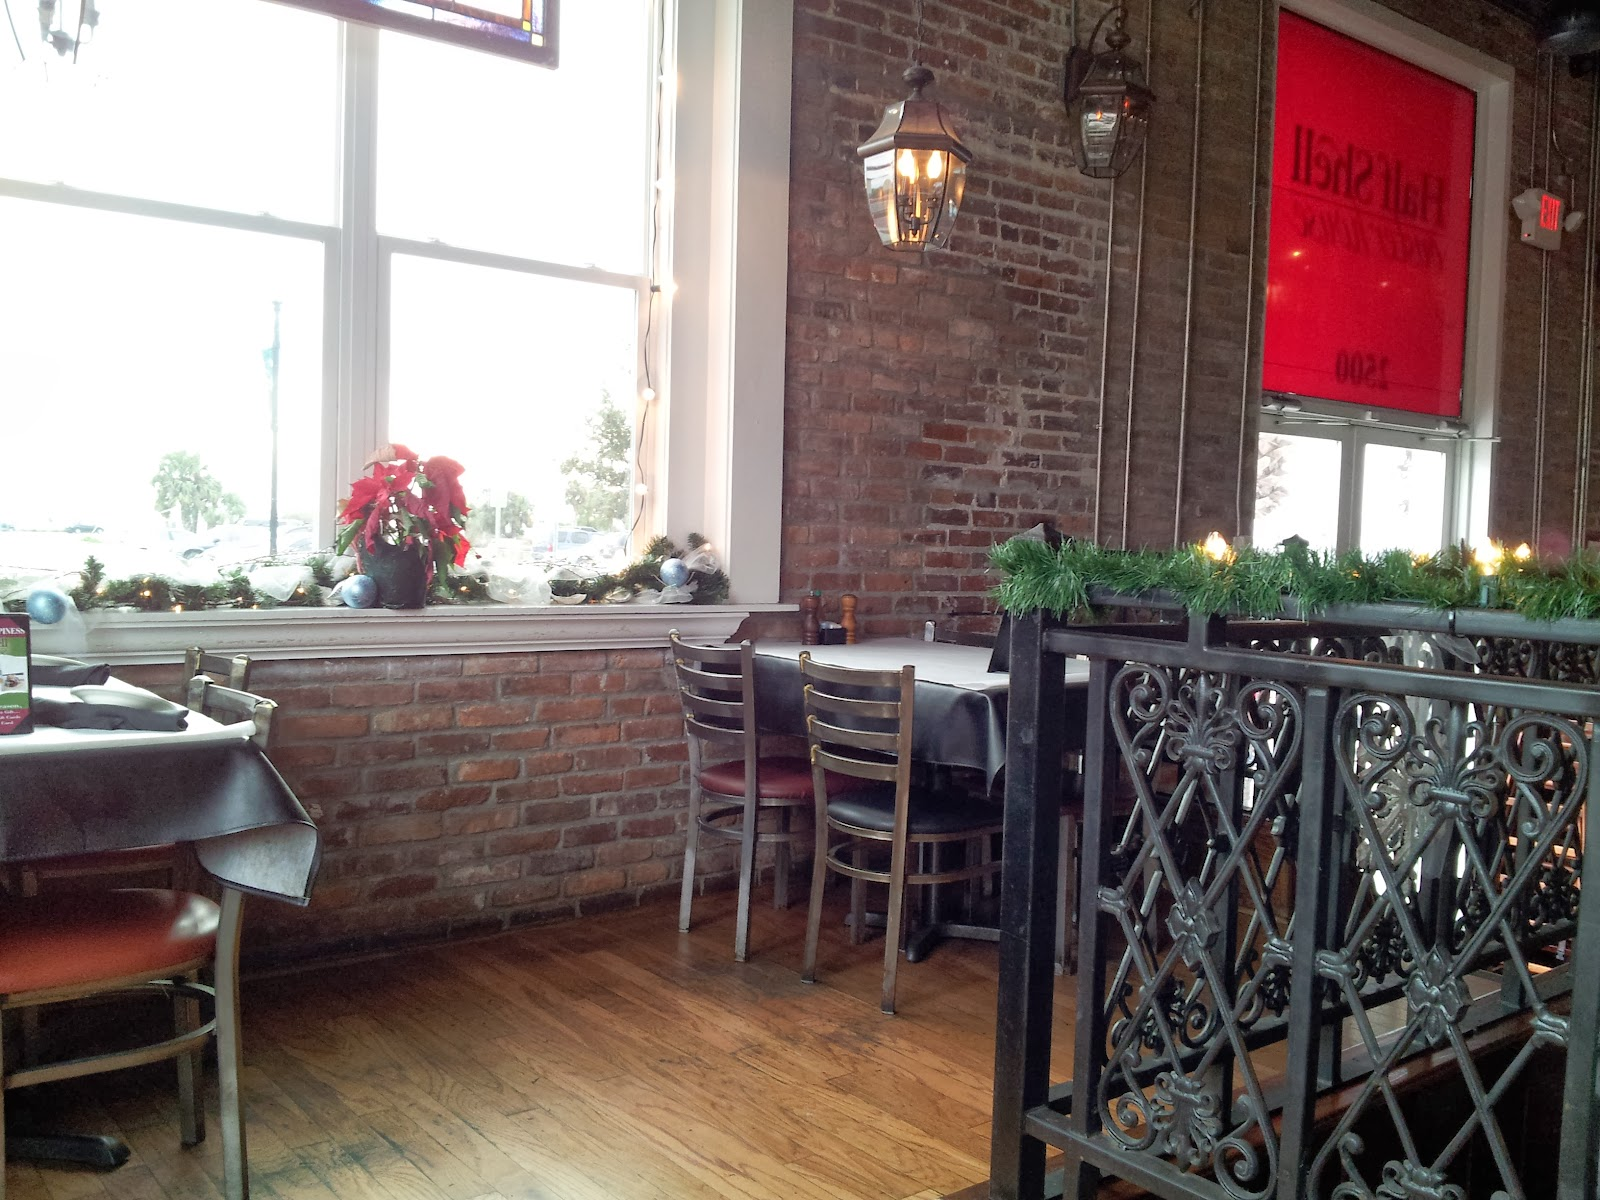 We Sat With Our Menus And Admired The Beautiful Surroundings. The Interior  Is All Hardwood, Exposed Brick And Wrought Iron. A Big Nod To New Orleans.